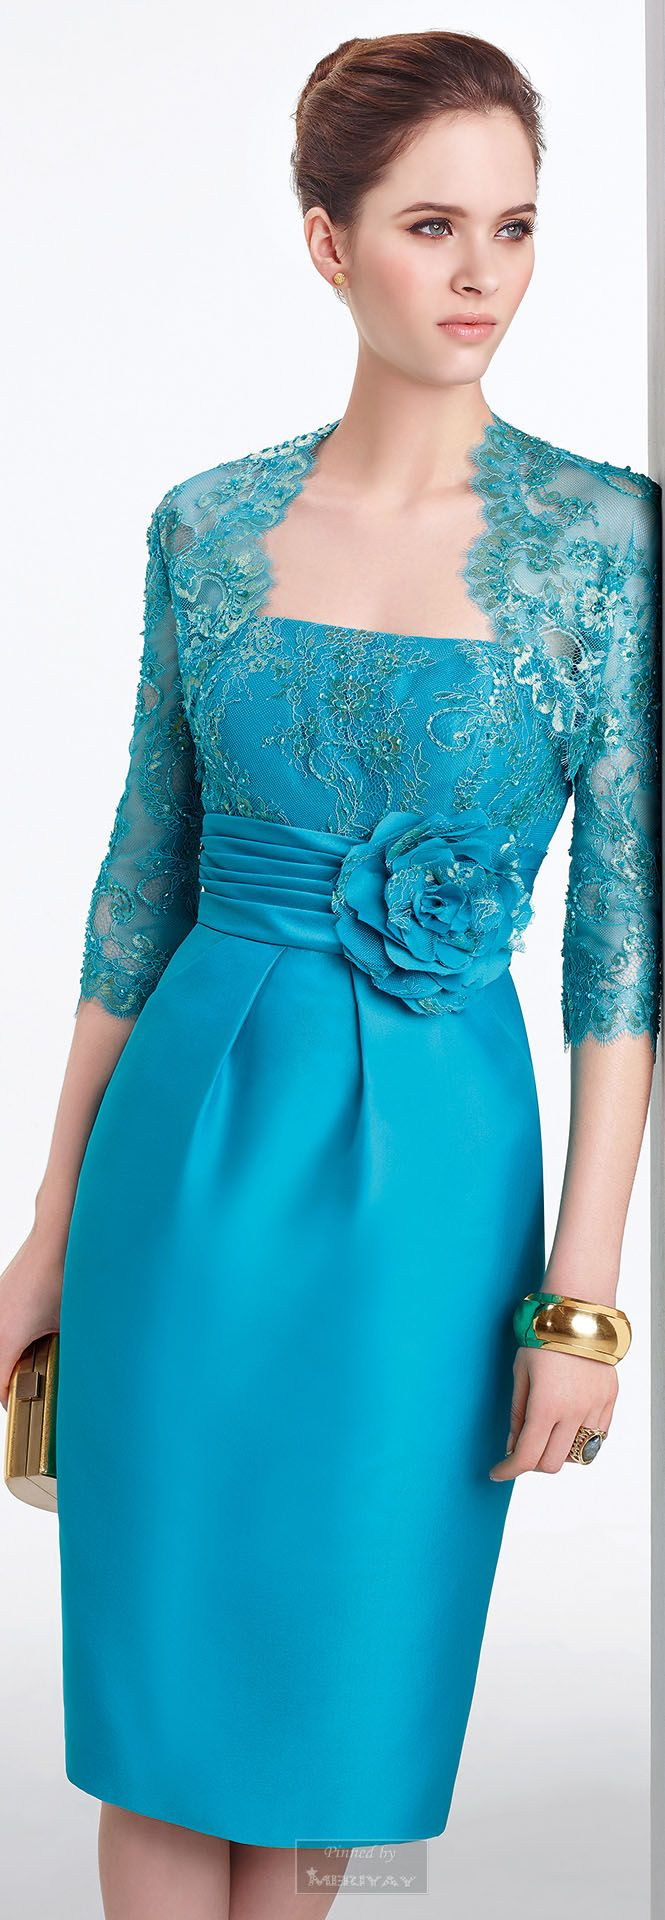 128 best The dress images on Pinterest | Prom dresses, Sweet dress ...